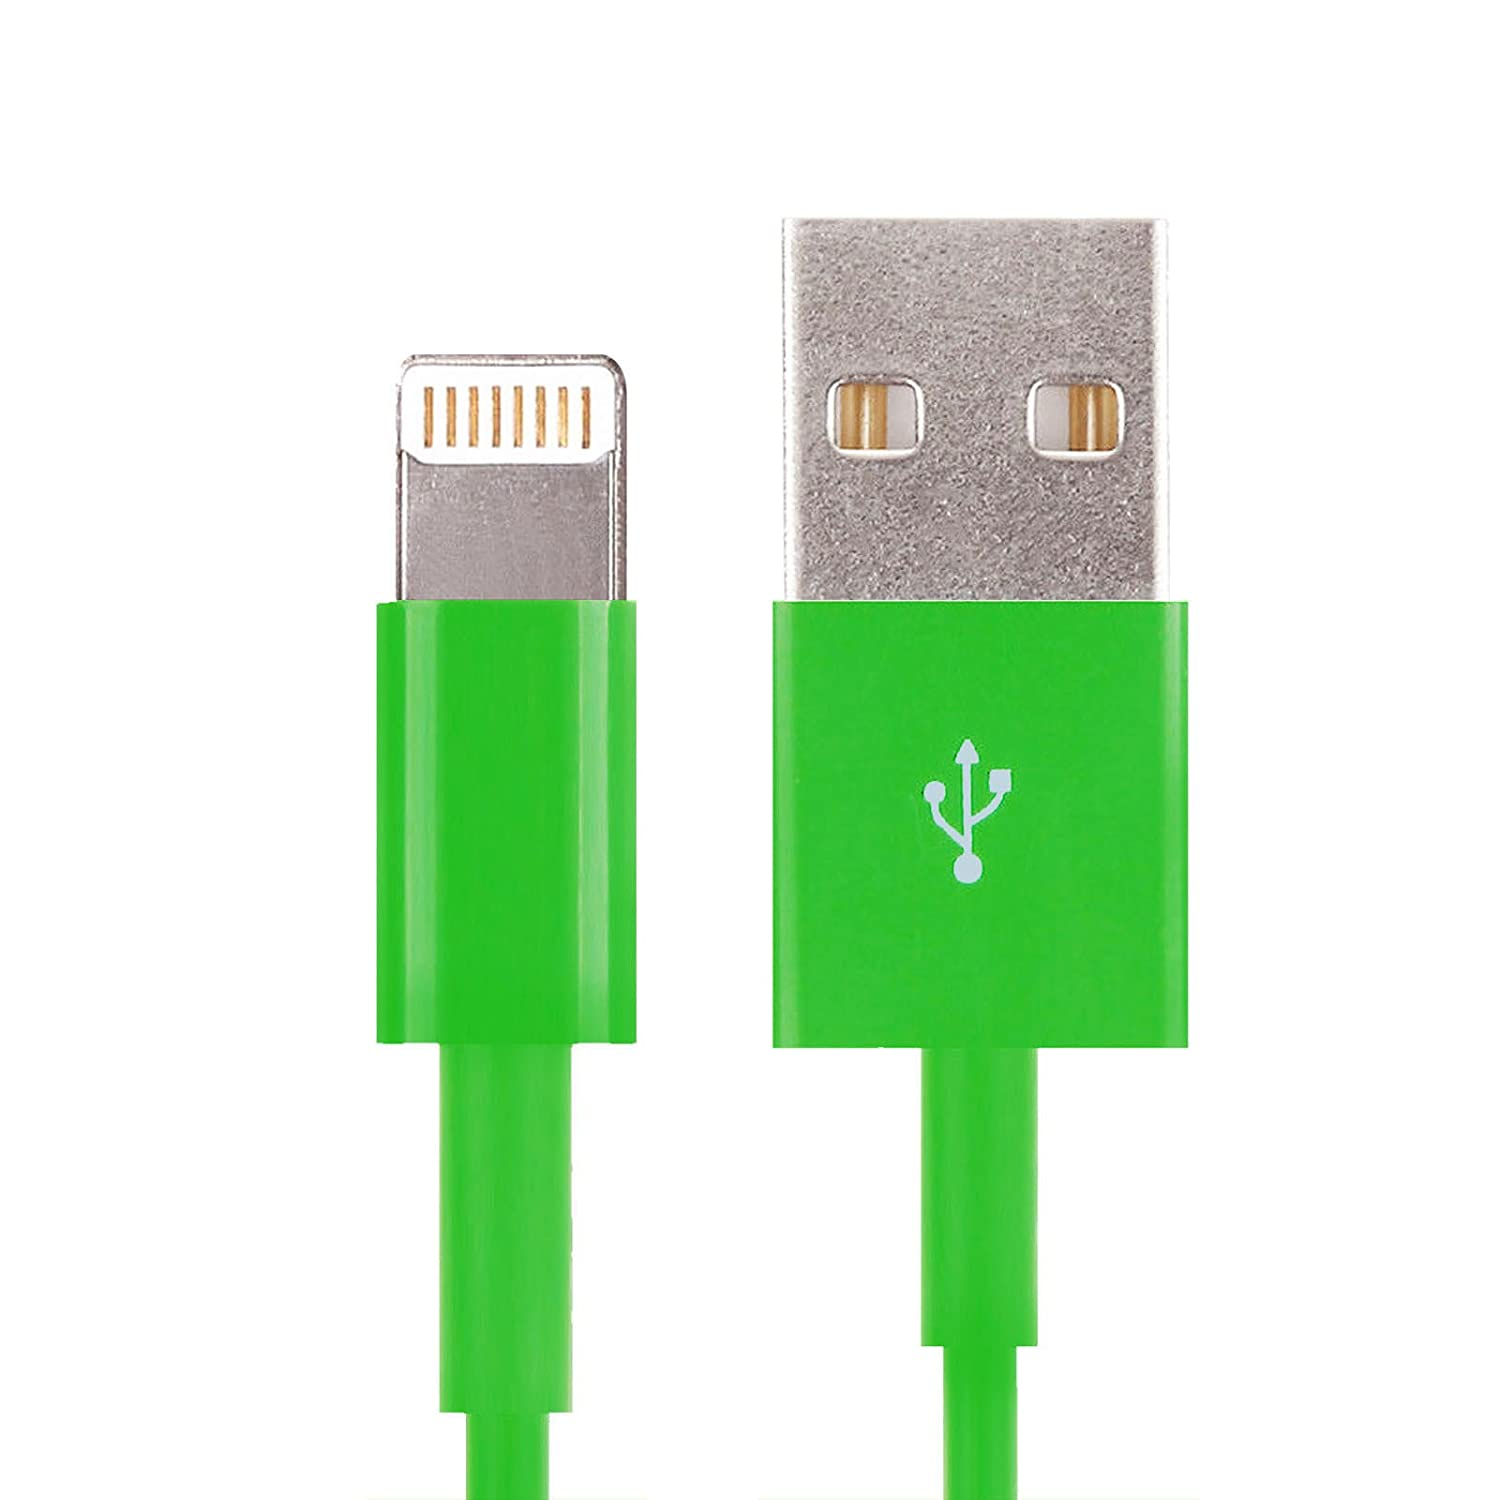 (6ft) 1 x 8 Pin Green Color USB Sync Cable Charger Cord Data for iPhone 5 5S 5C 6 6 Plus iPod Touch 5 Nano 7